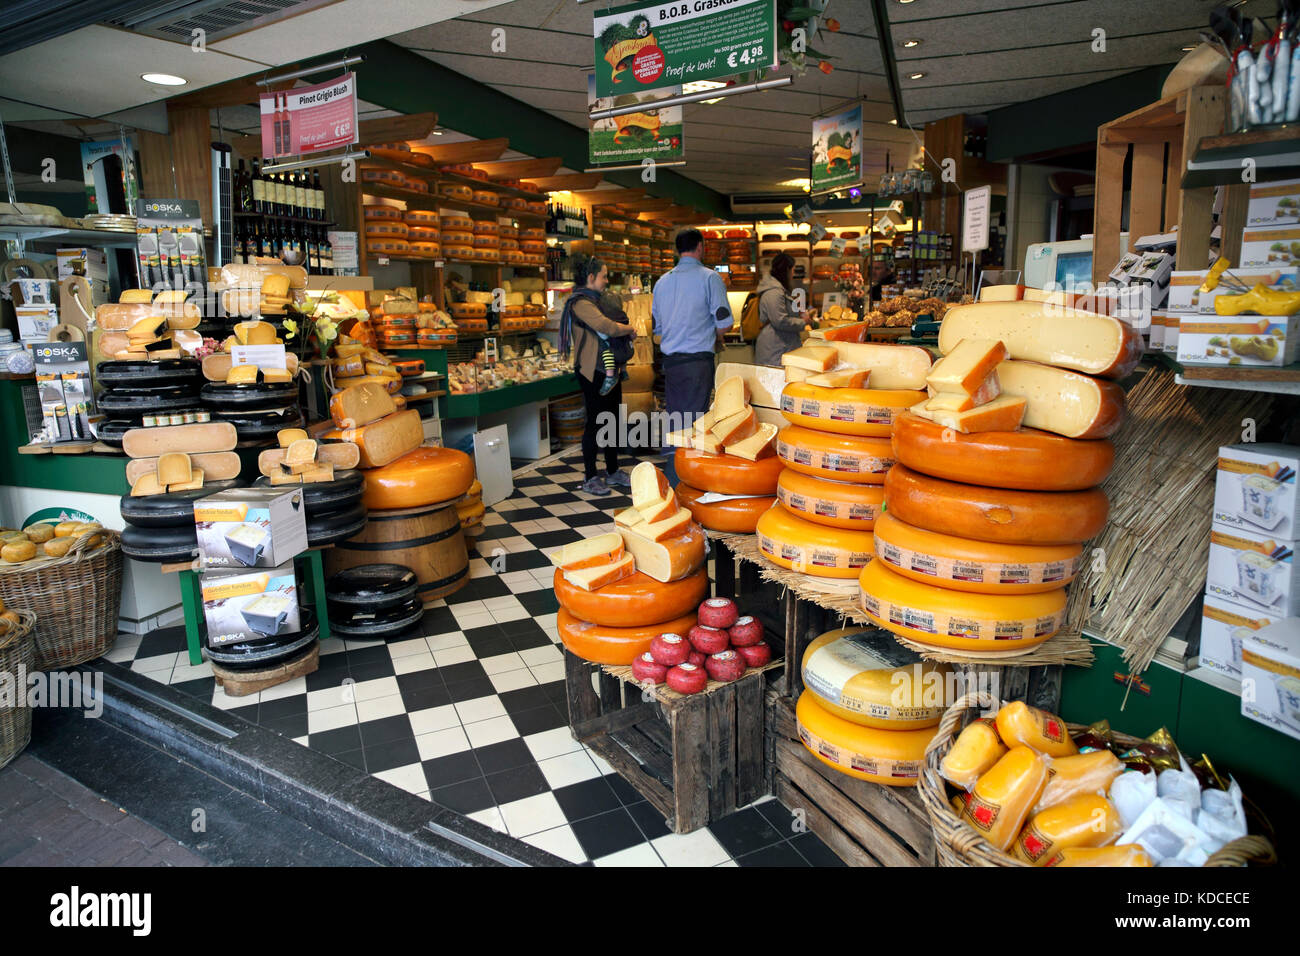 Cheese wheels on display outside the Kaashuis Tromp cheese shop, Haarlem, The Netherlands - Stock Image